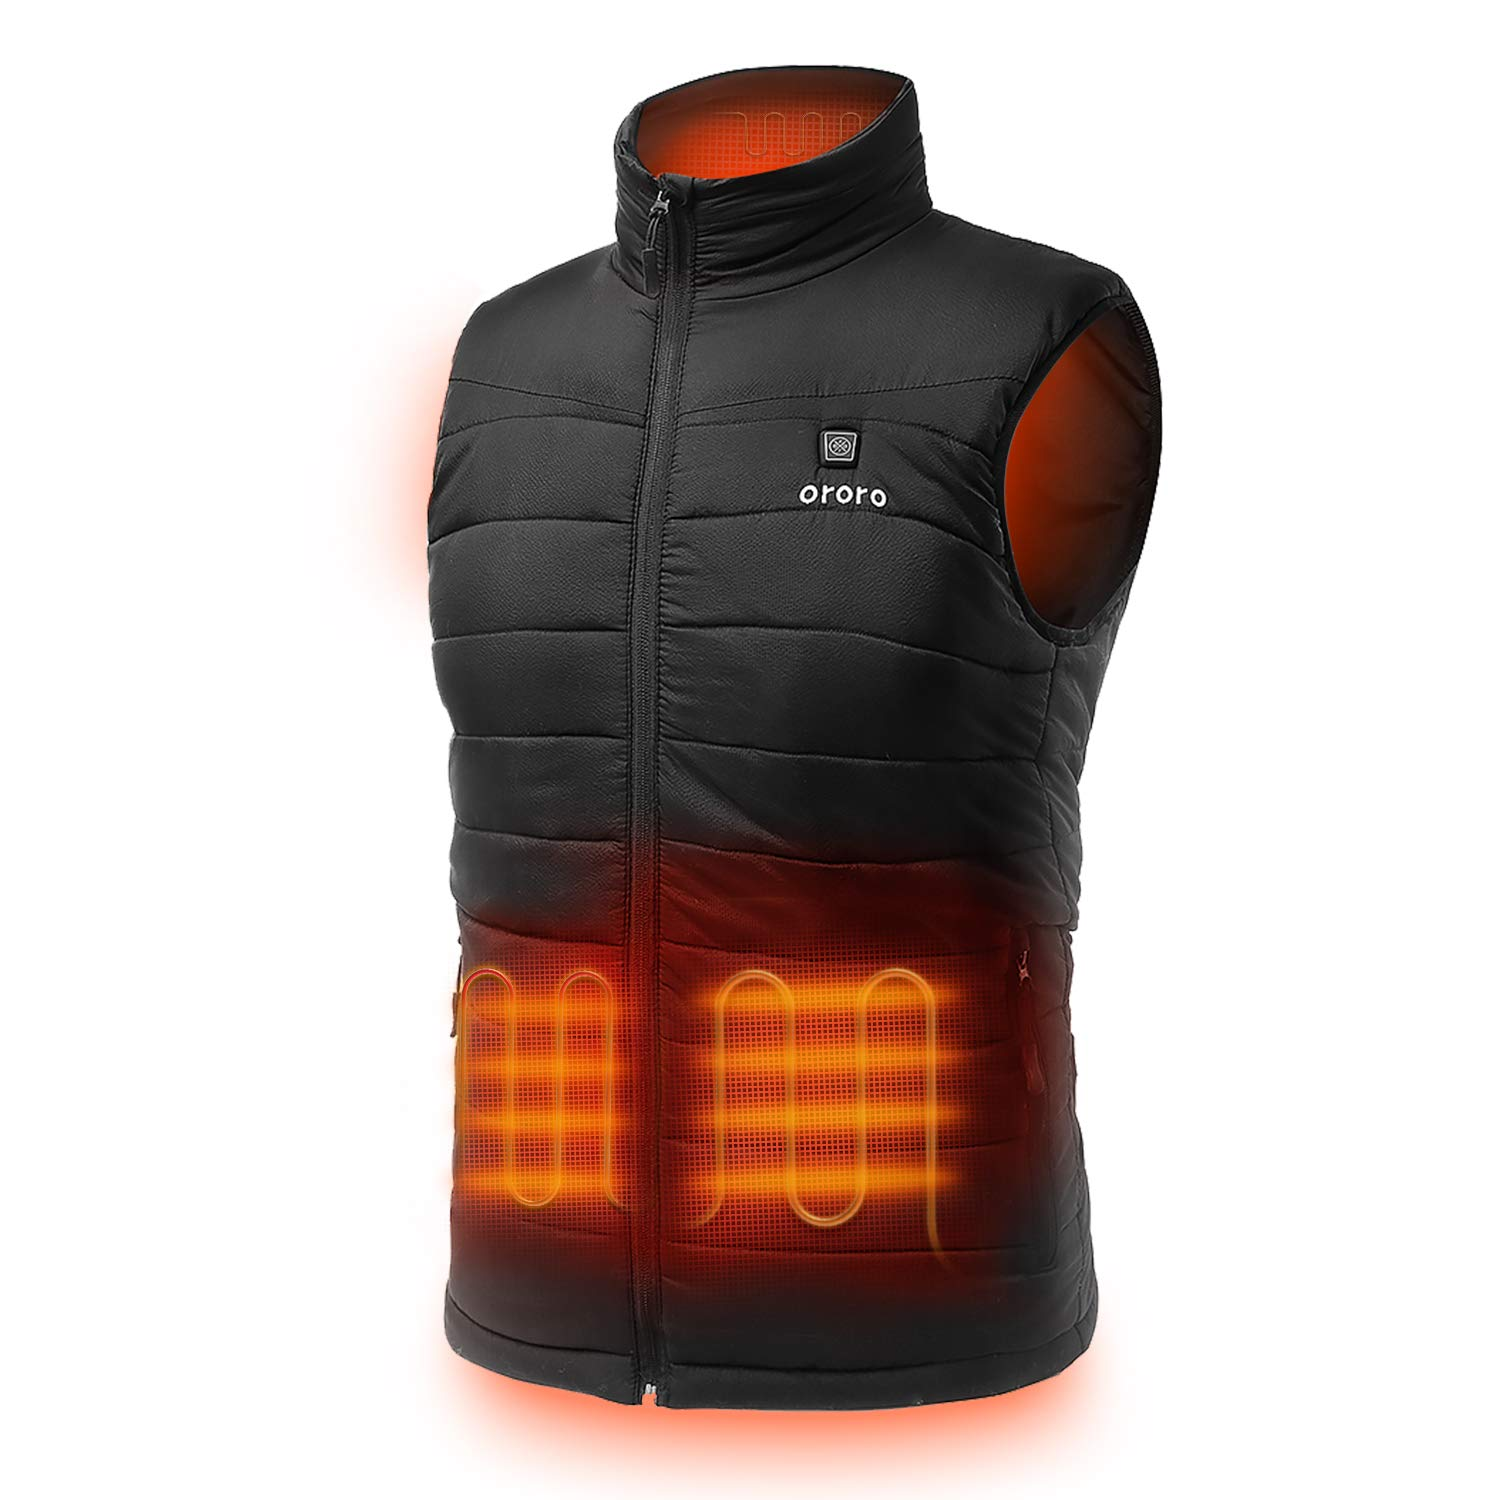 Ororo heated vest for camping hiking